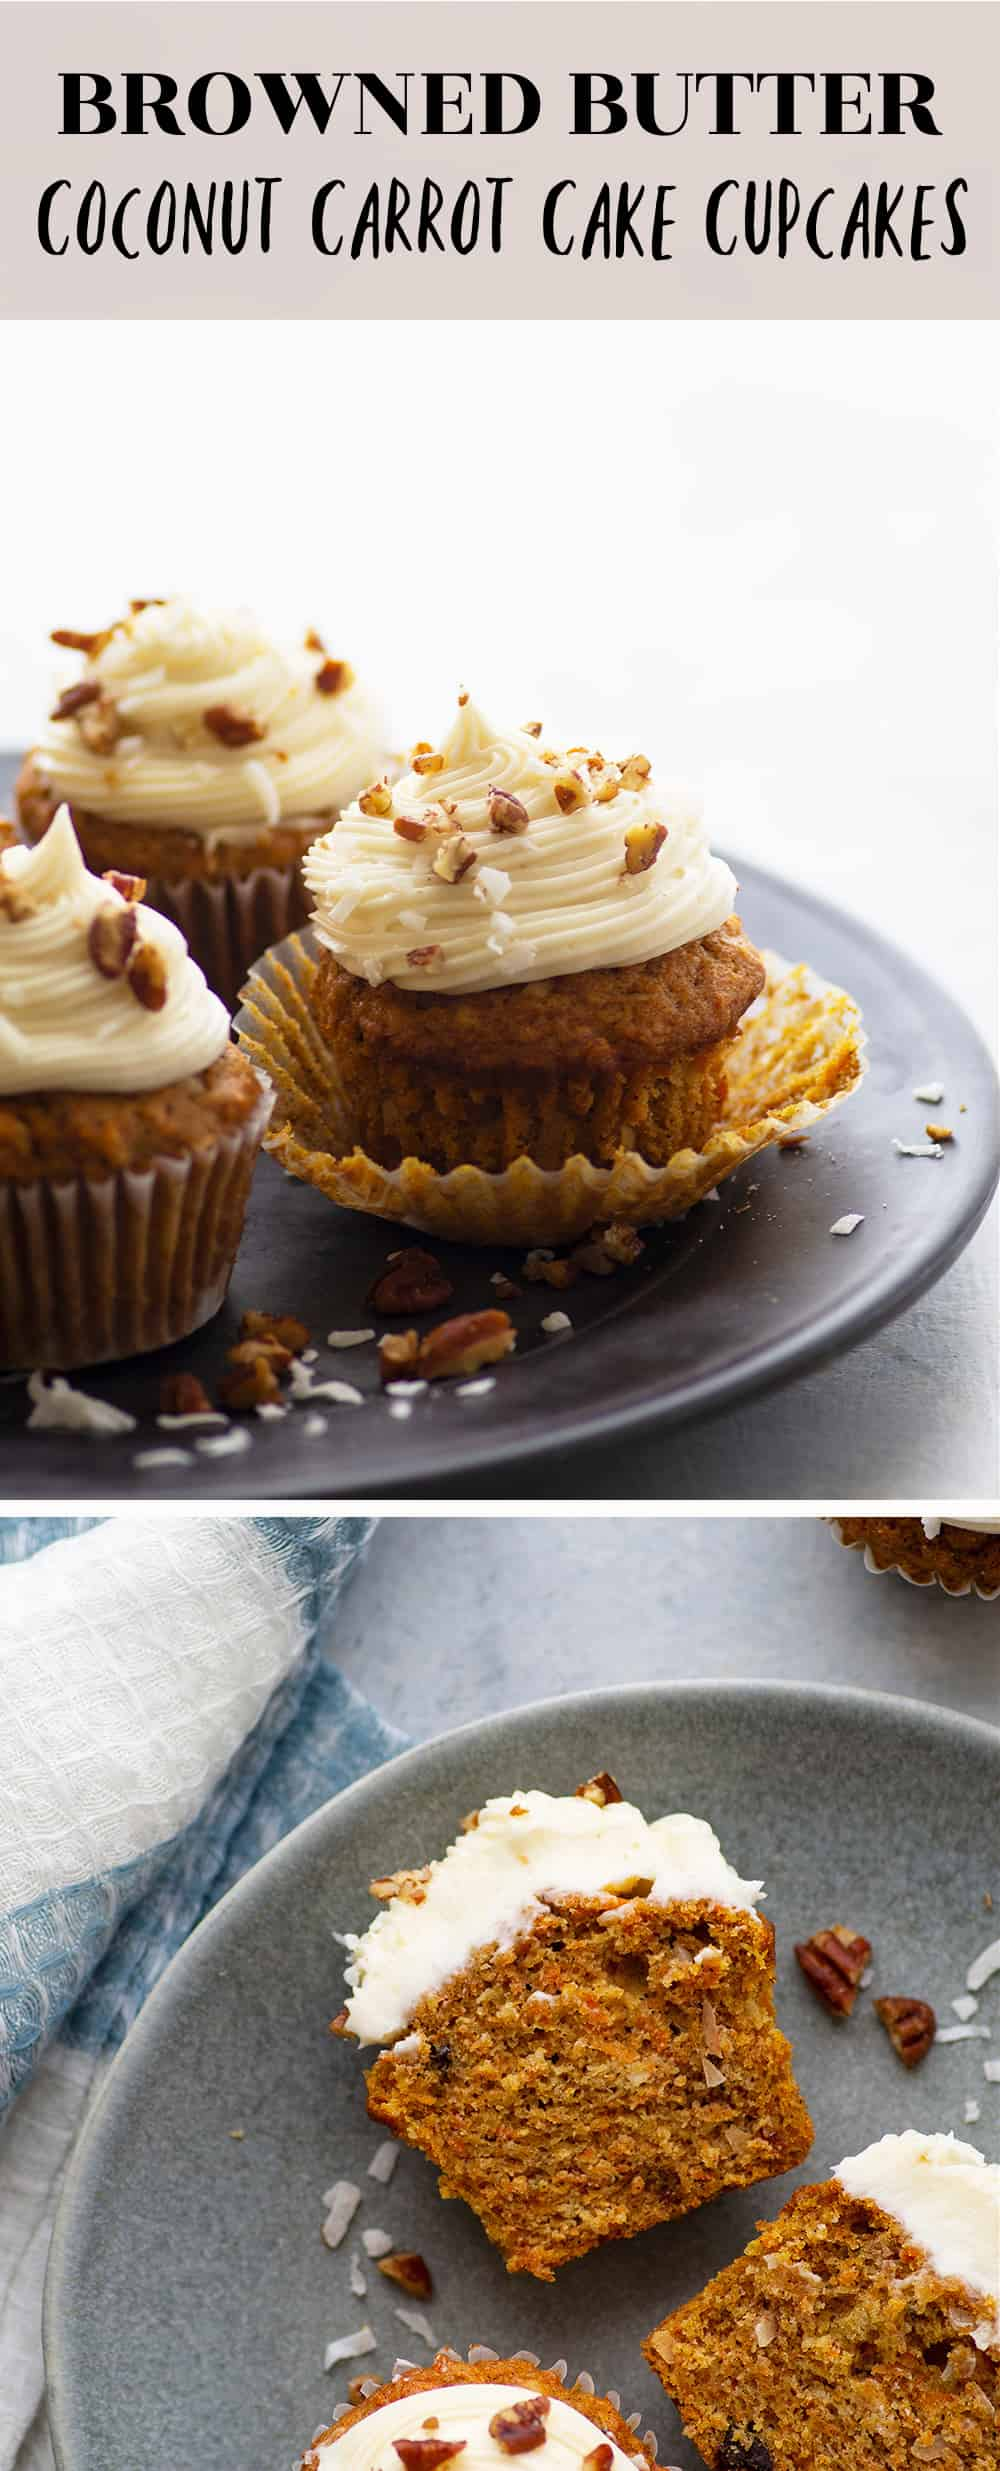 Coconut carrot cake cupcakes feature an incredibly soft browned butter carrot cake interior with plenty of toasty nuts, flaked coconut, and a silky cream cheese frosting.